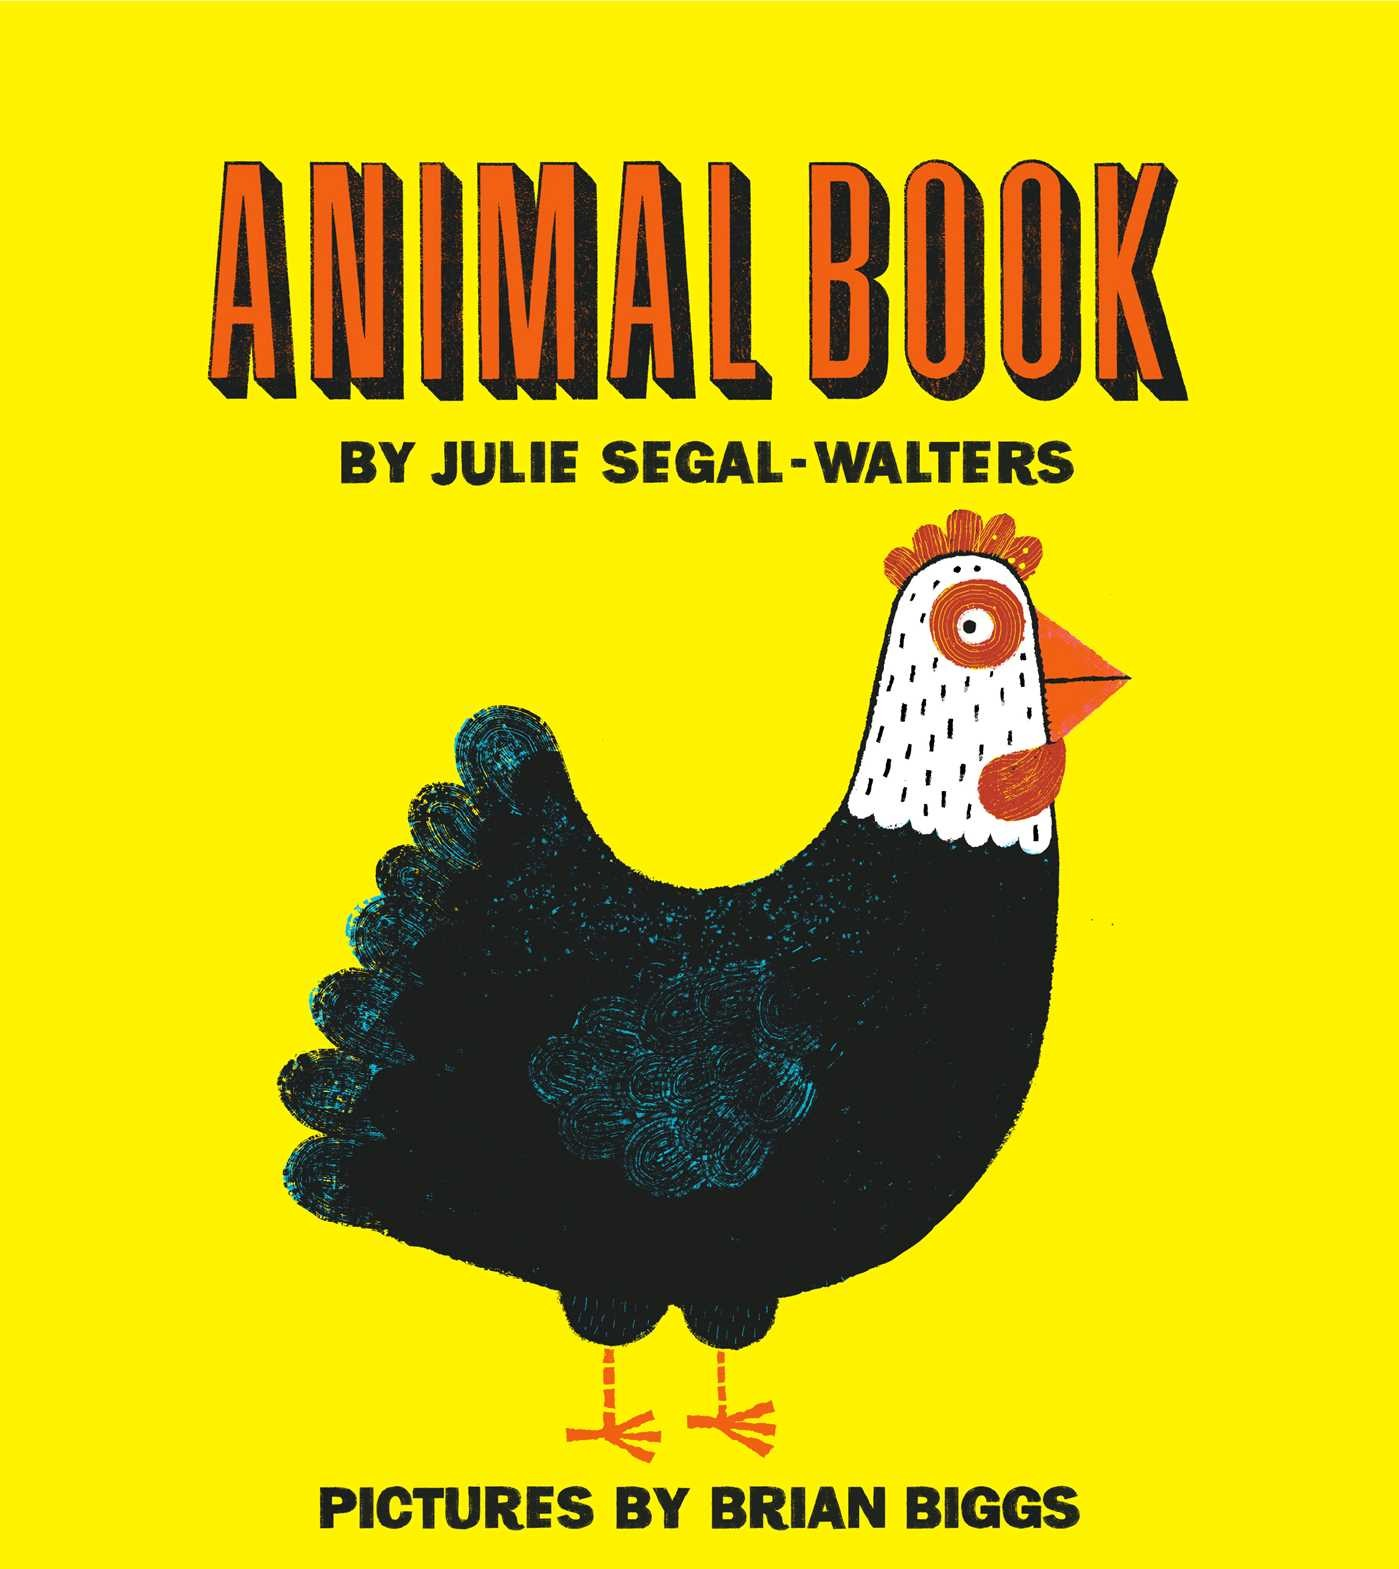 This is not a normal animal book 9781481439220.in01